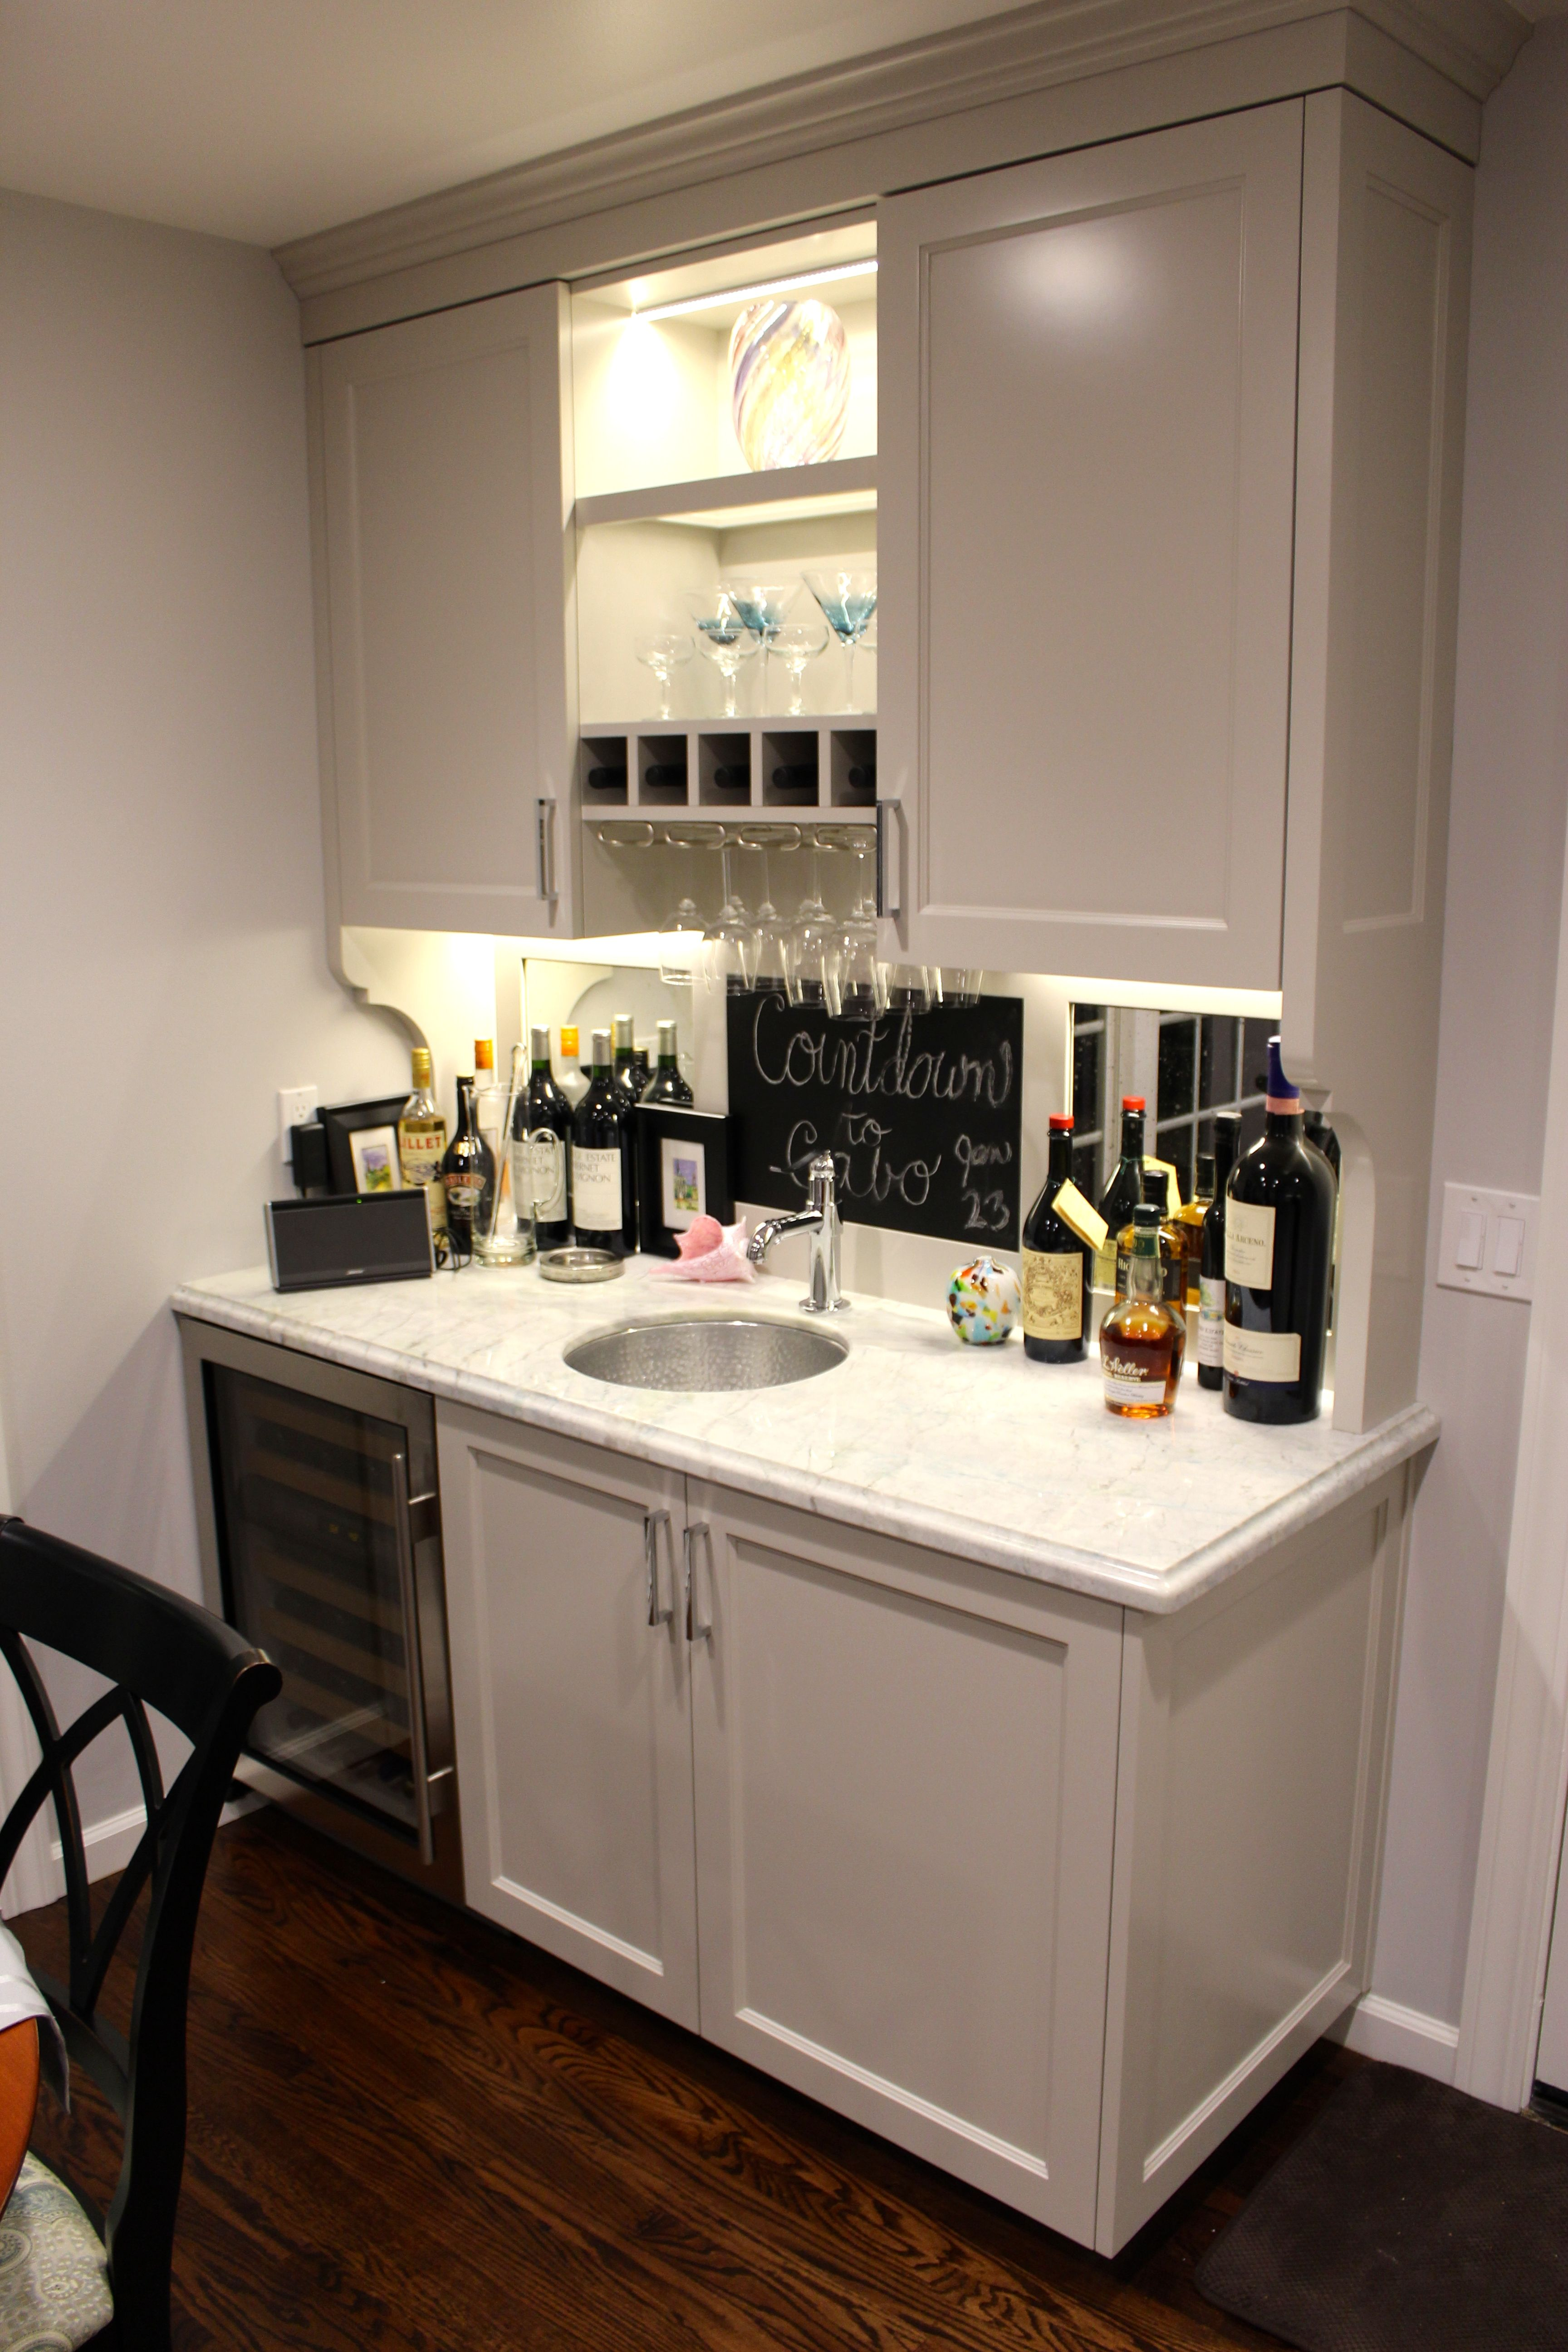 Sub zero counter depth refrigerator - Wet Bar With Sub Zero Wine Fridge